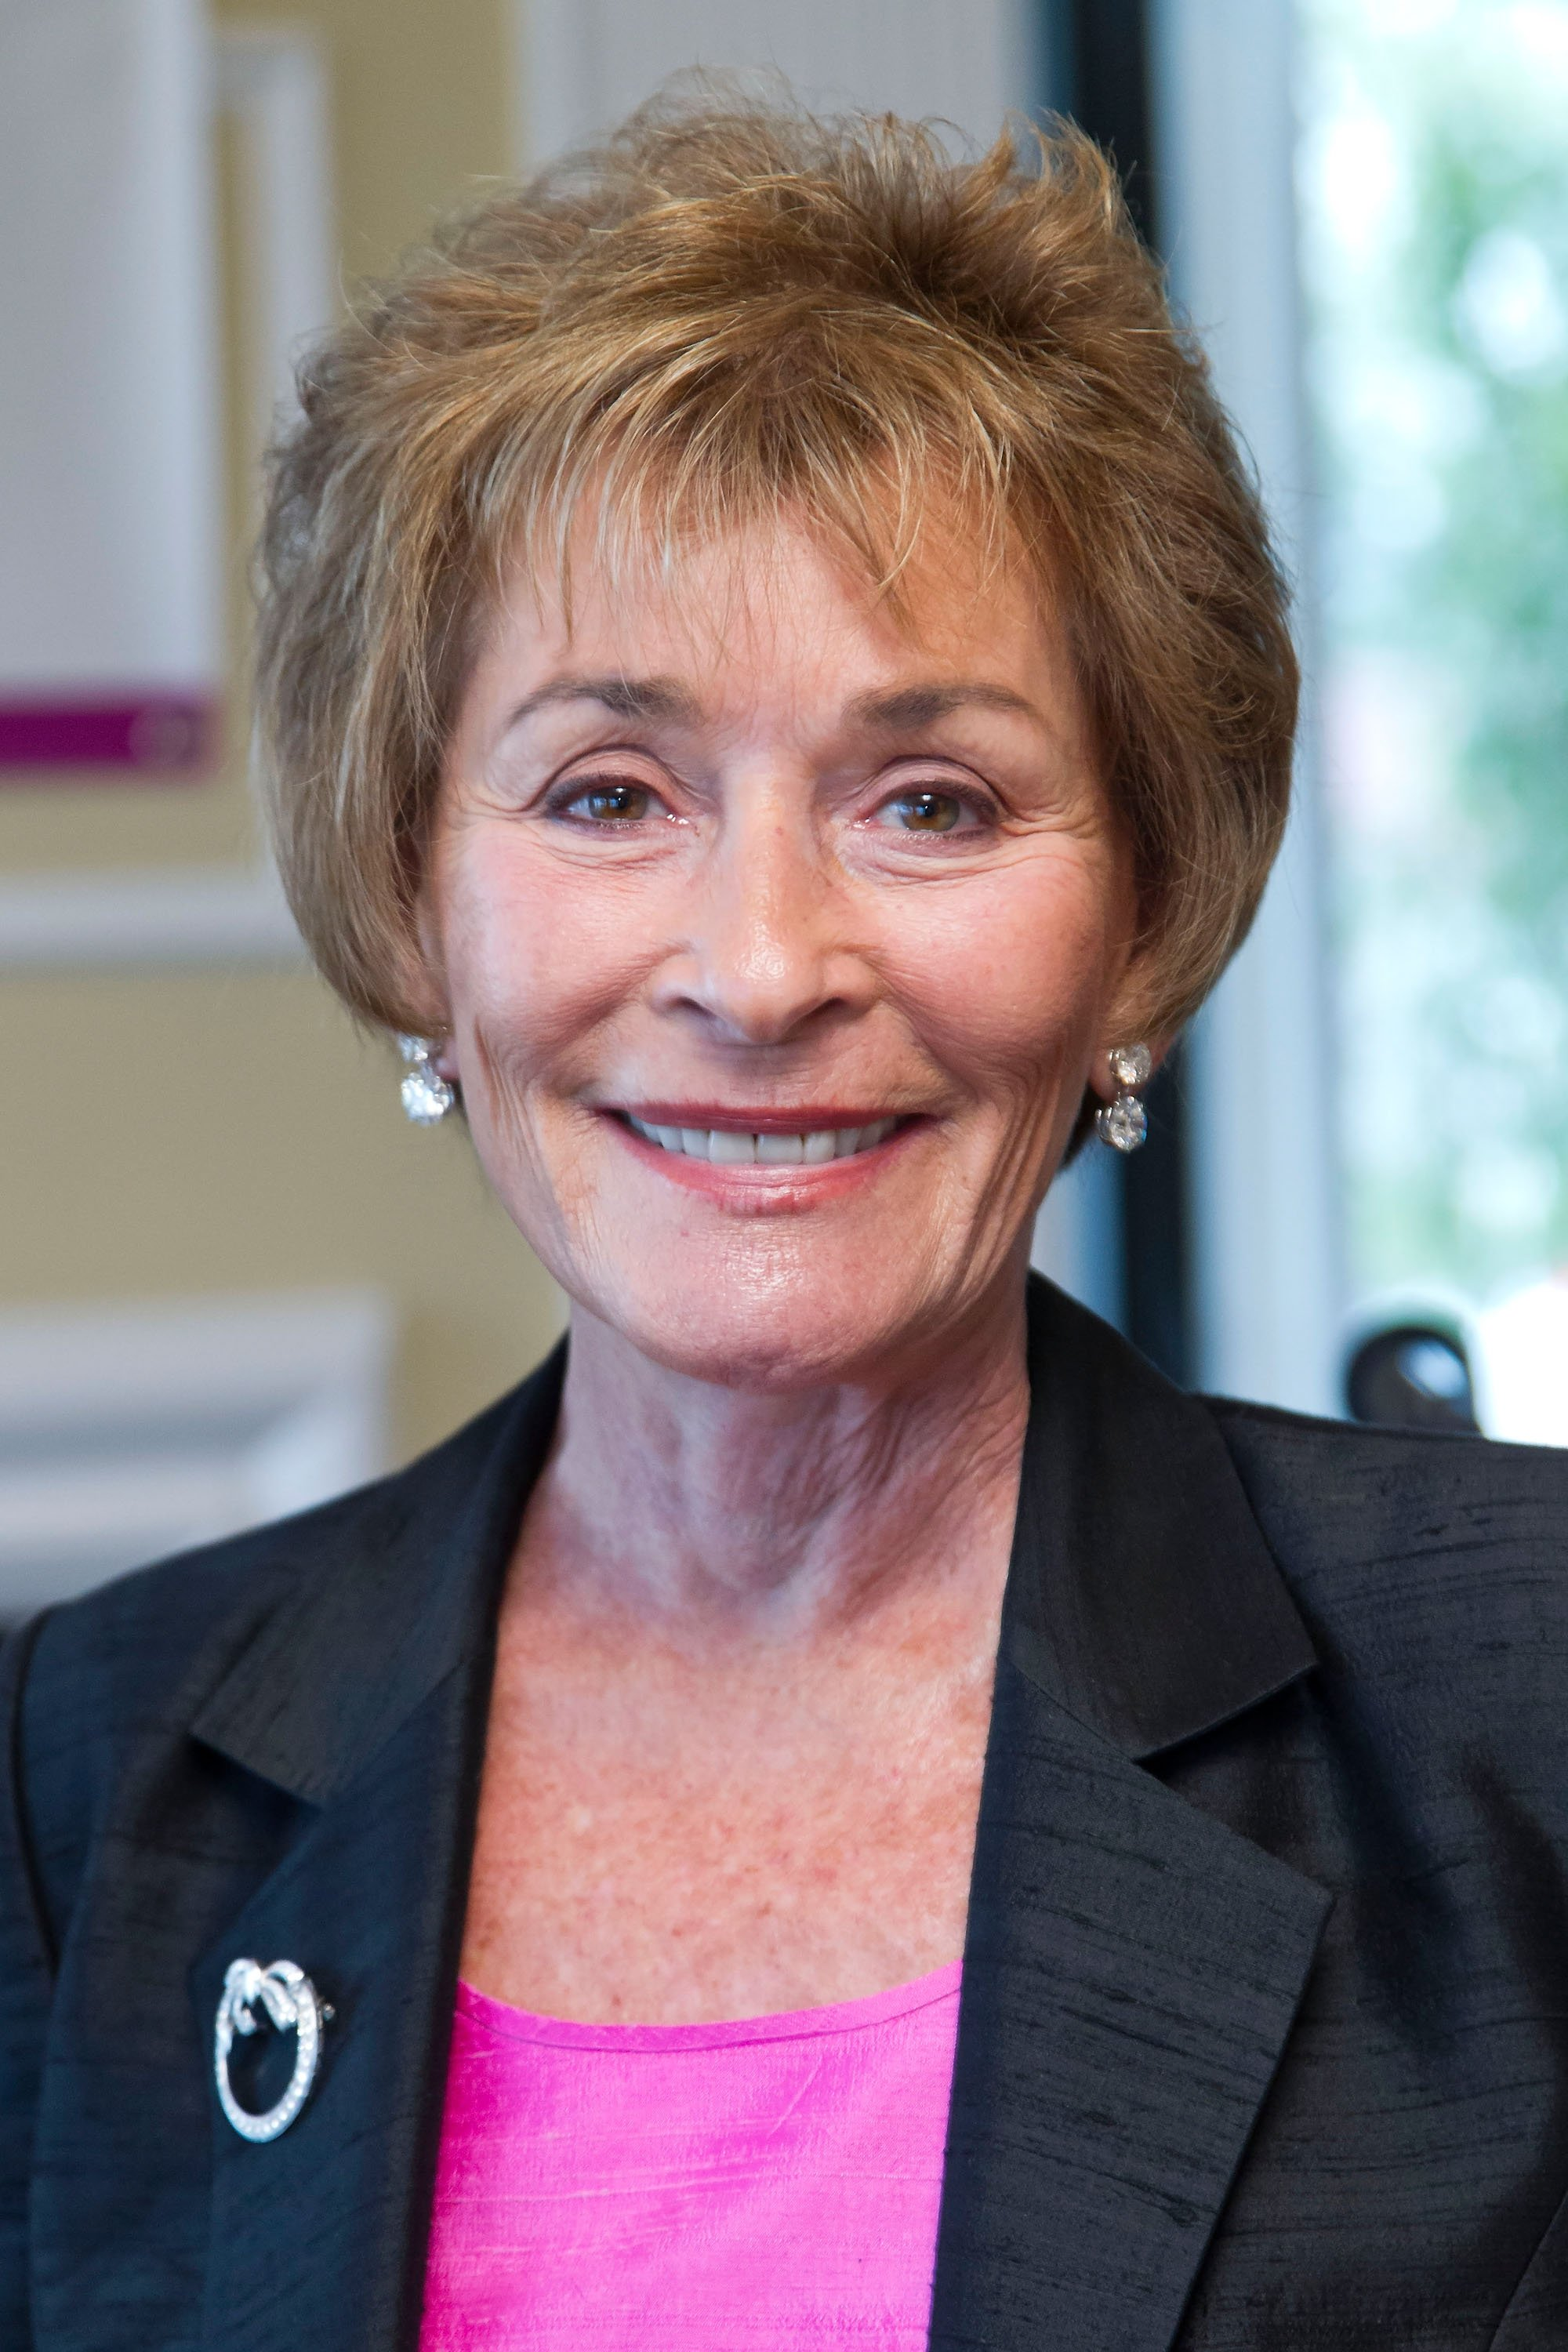 Judge Judy on May 24, 2012 in New York | Source: Getty Images